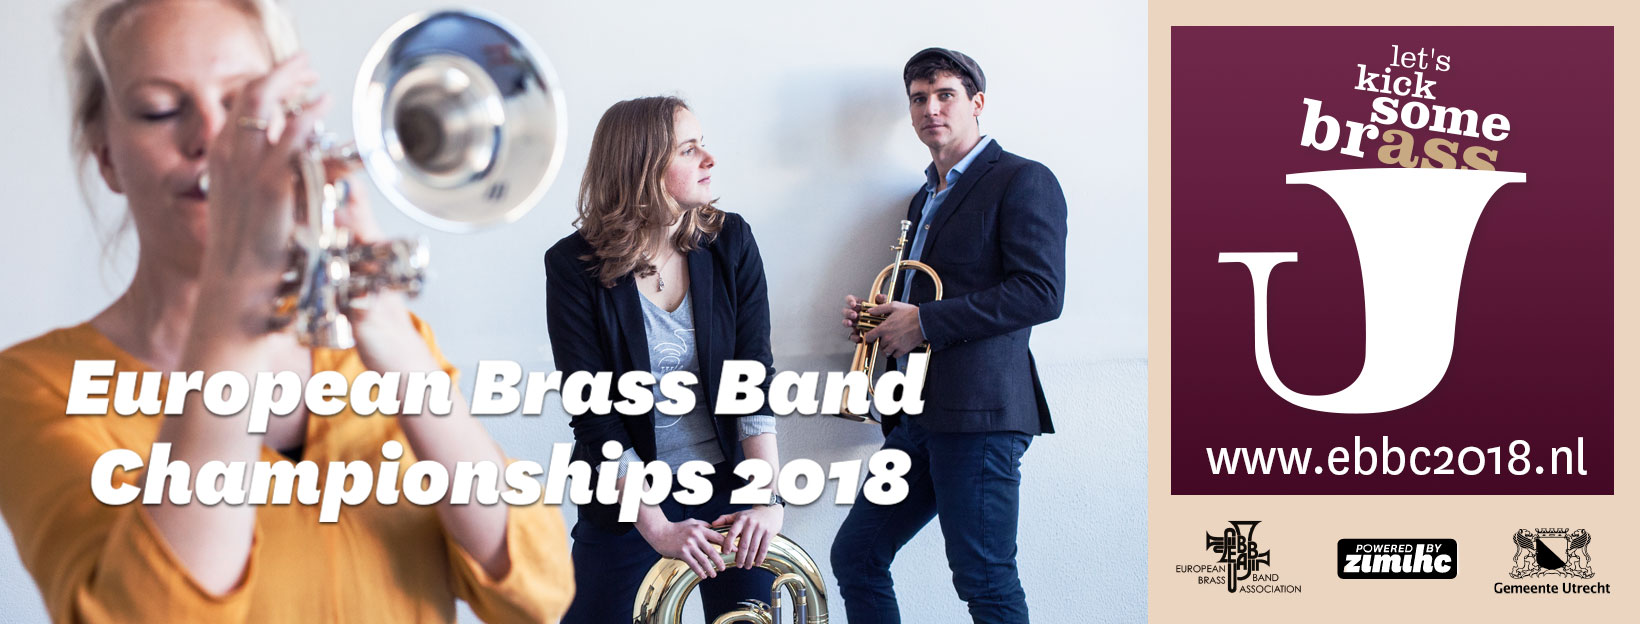 European Brass Band Championchip-2018_Utrecht